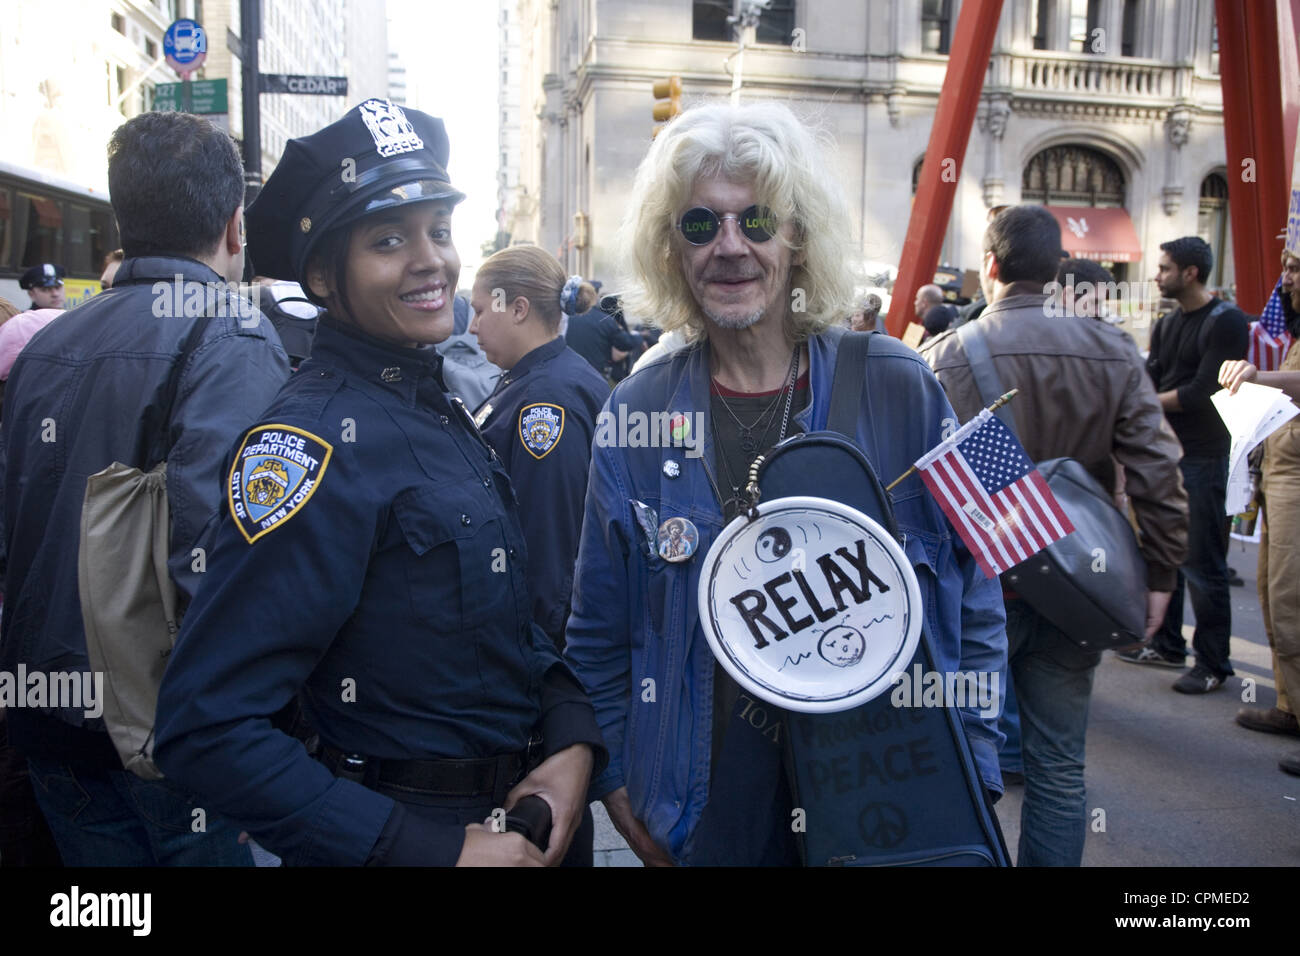 Occupy Wall Street demonstrator stands for a photo with an NYPD officer at Zuccotti Park, aka Liberty Square in - Stock Image